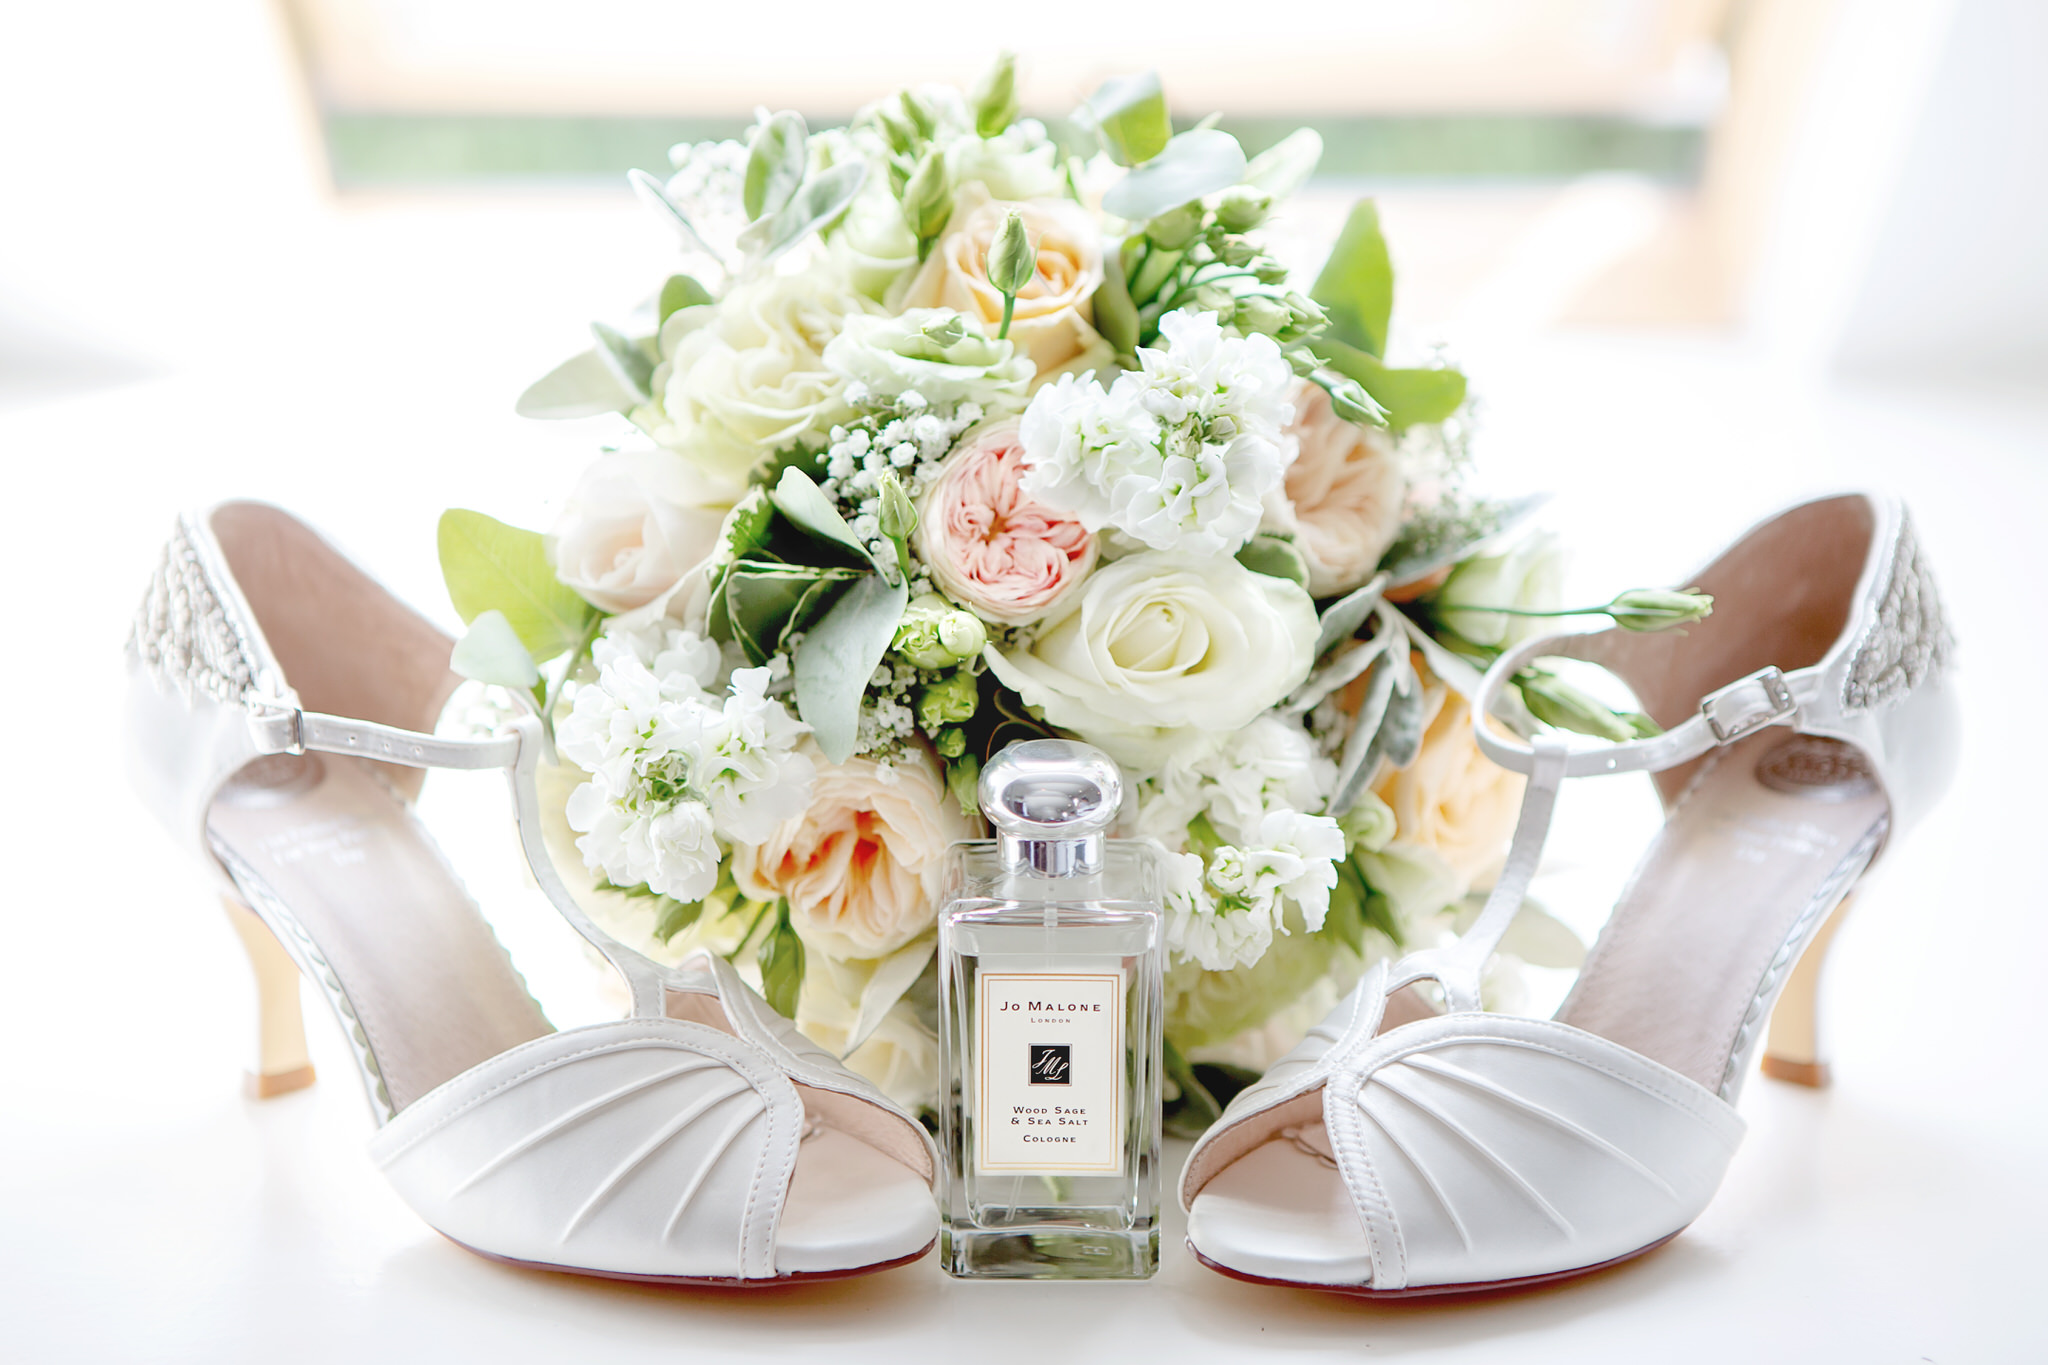 Bridal bouquet and wedding shoes by Kent wedding photographer